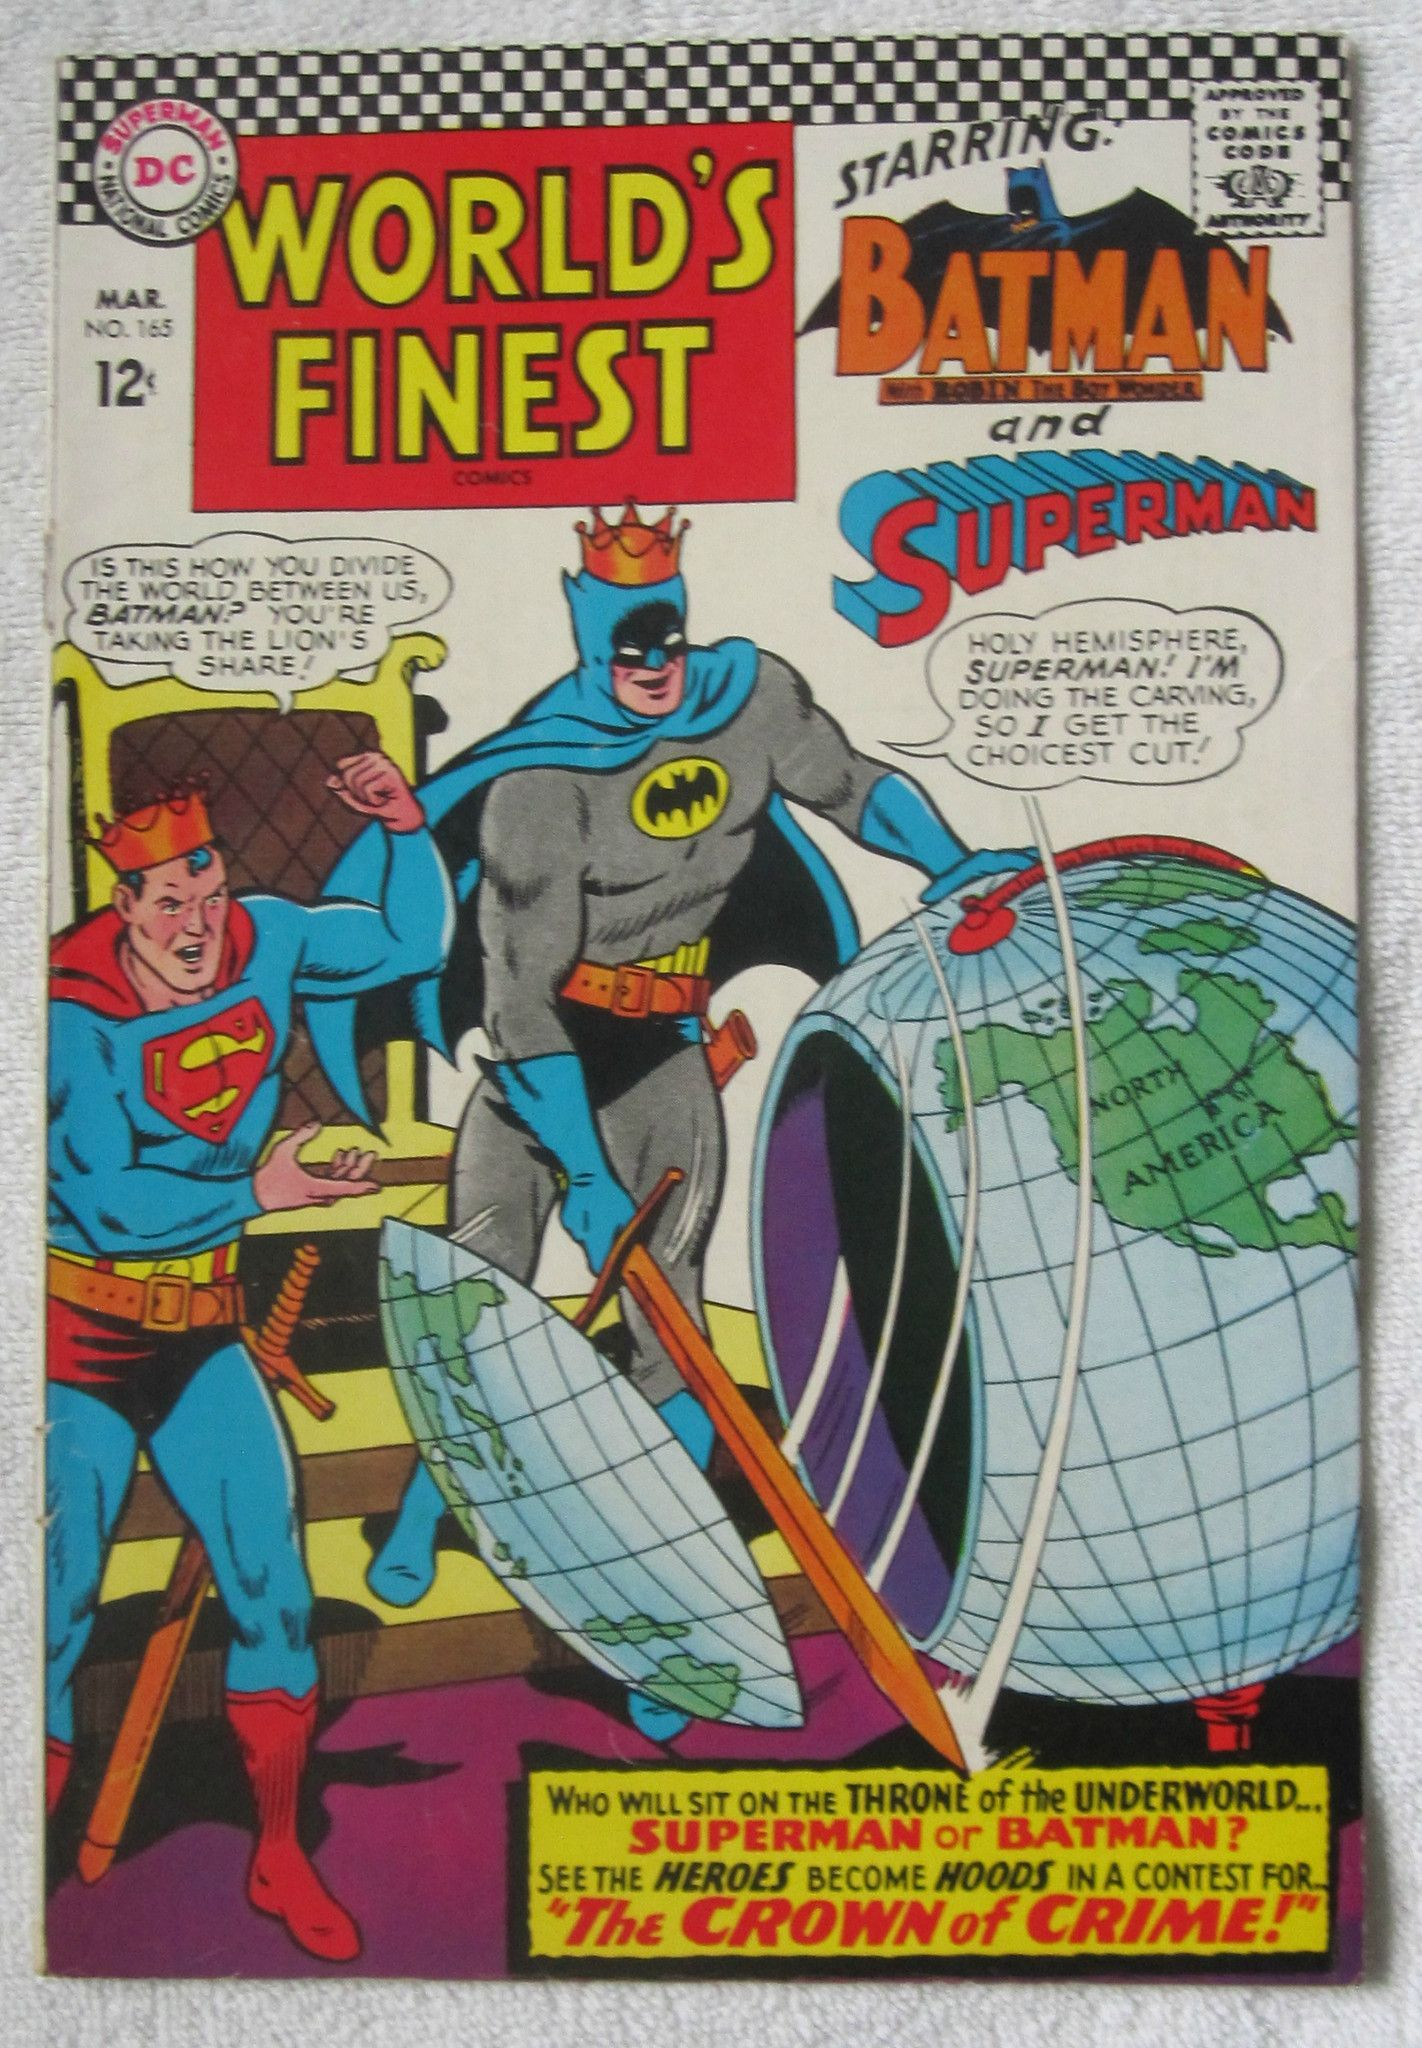 Worldu0027s Finest Comics #165 (Mar 1967, DC) VG/F 5.0